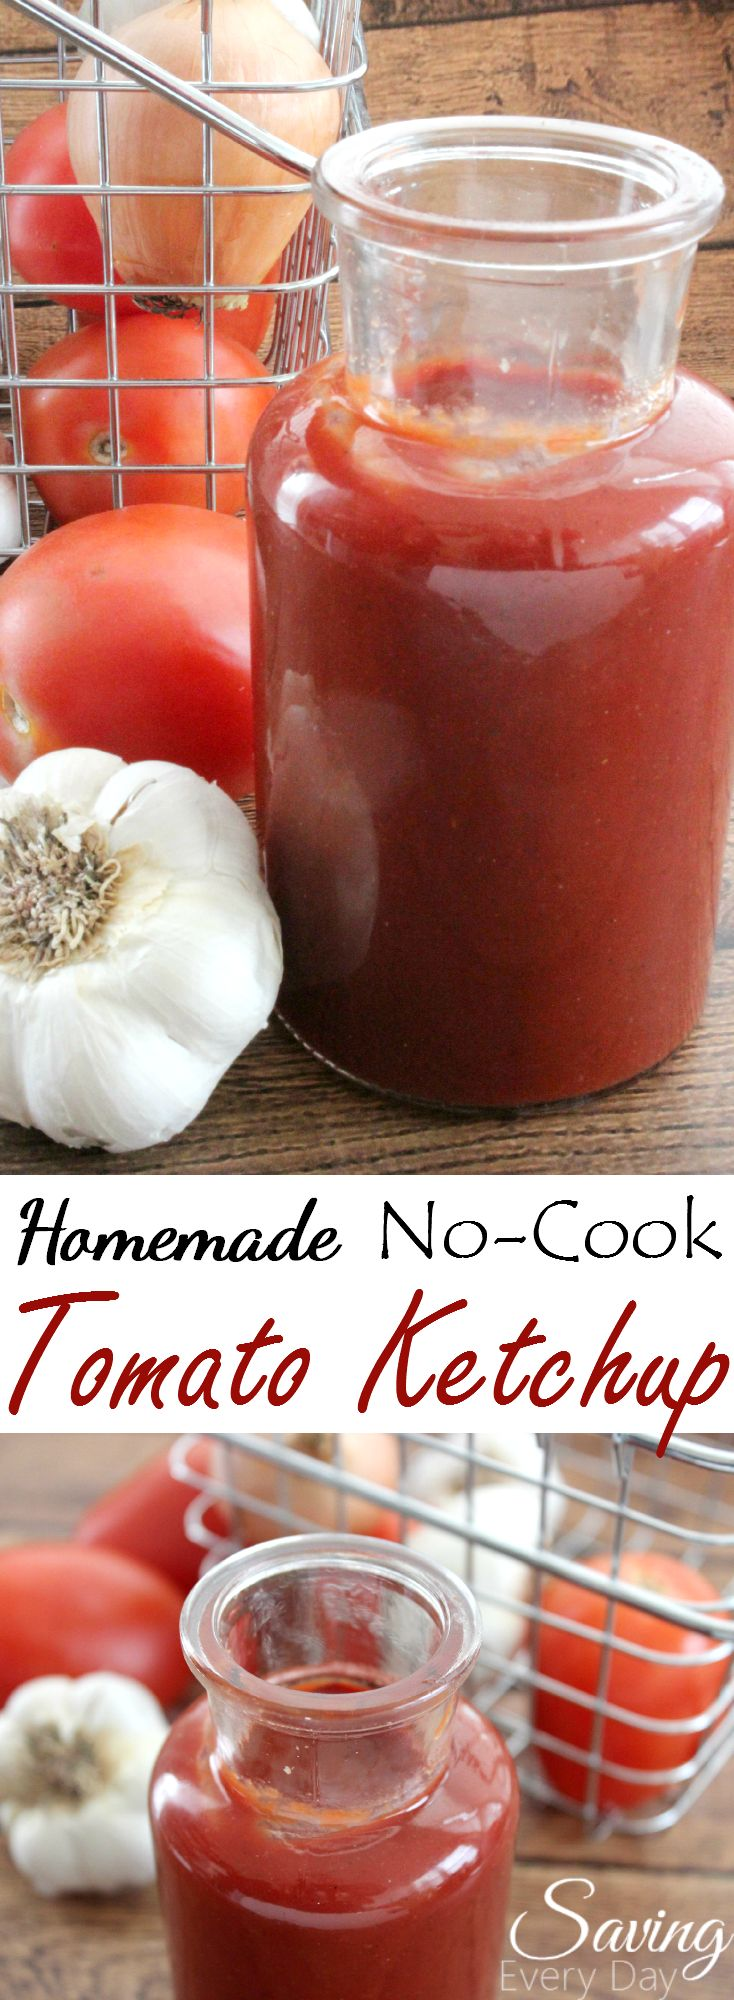 A delicious, all-nature homemade ketchup recipe using ingredients you probably already have in your pantry! http://www.savingeveryday.net/homemade-ketchup-recipe/